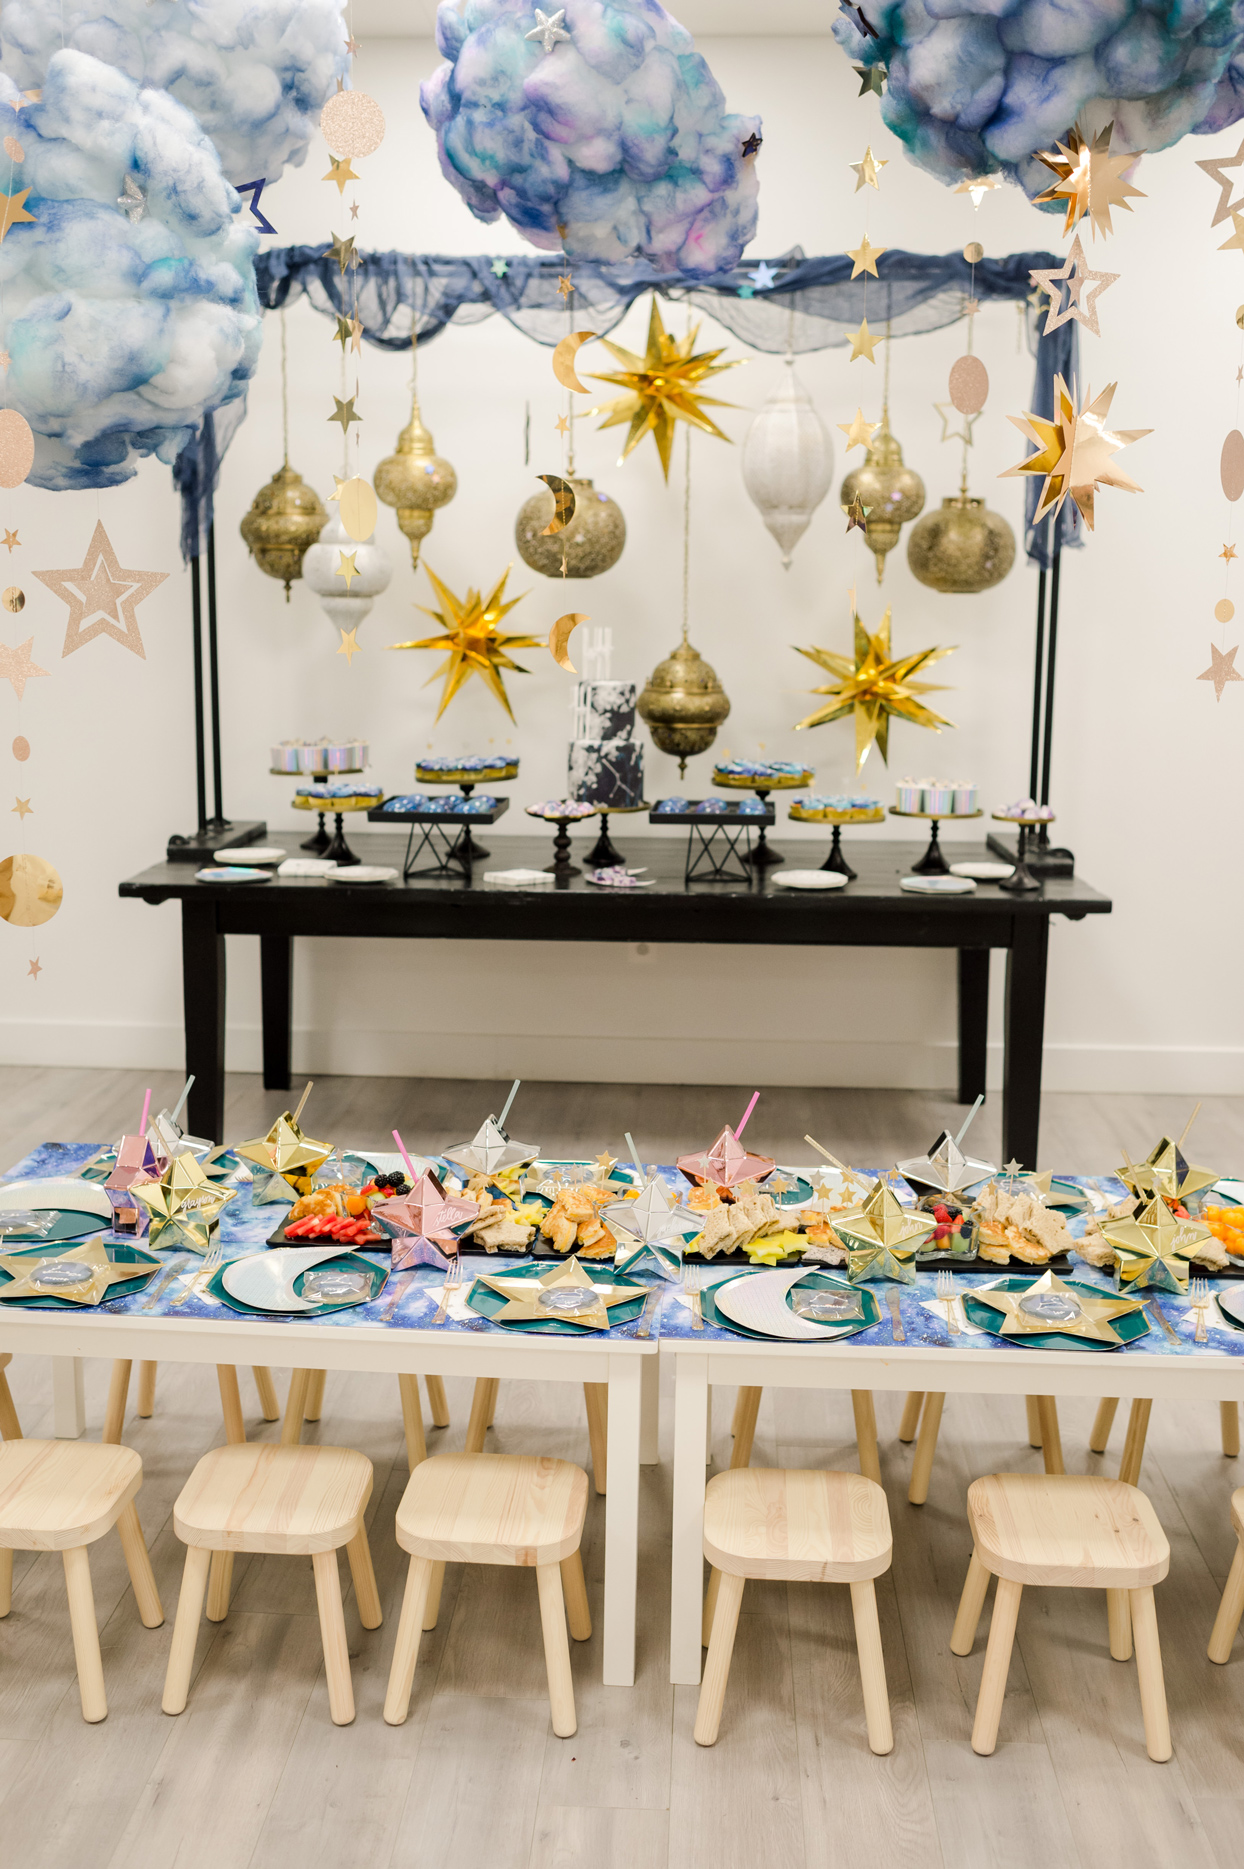 hanging star decor above outer-space table settings